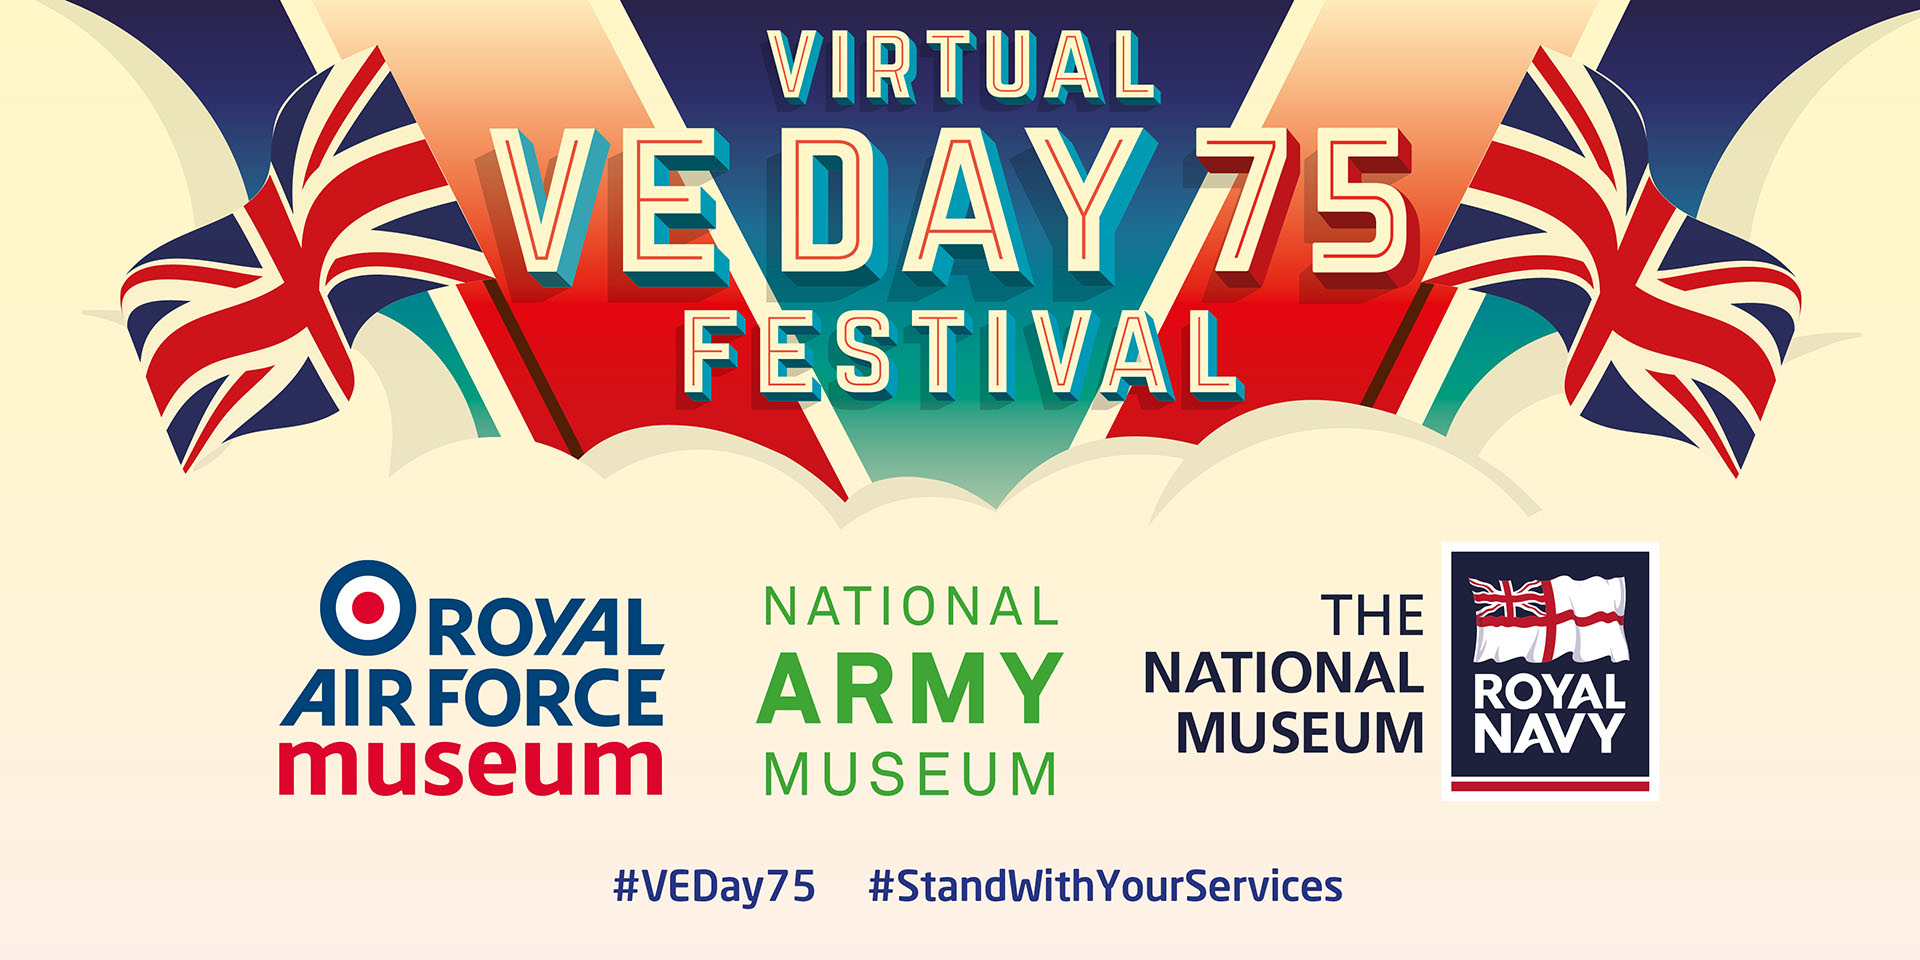 Virtual VE Day 75 Festival